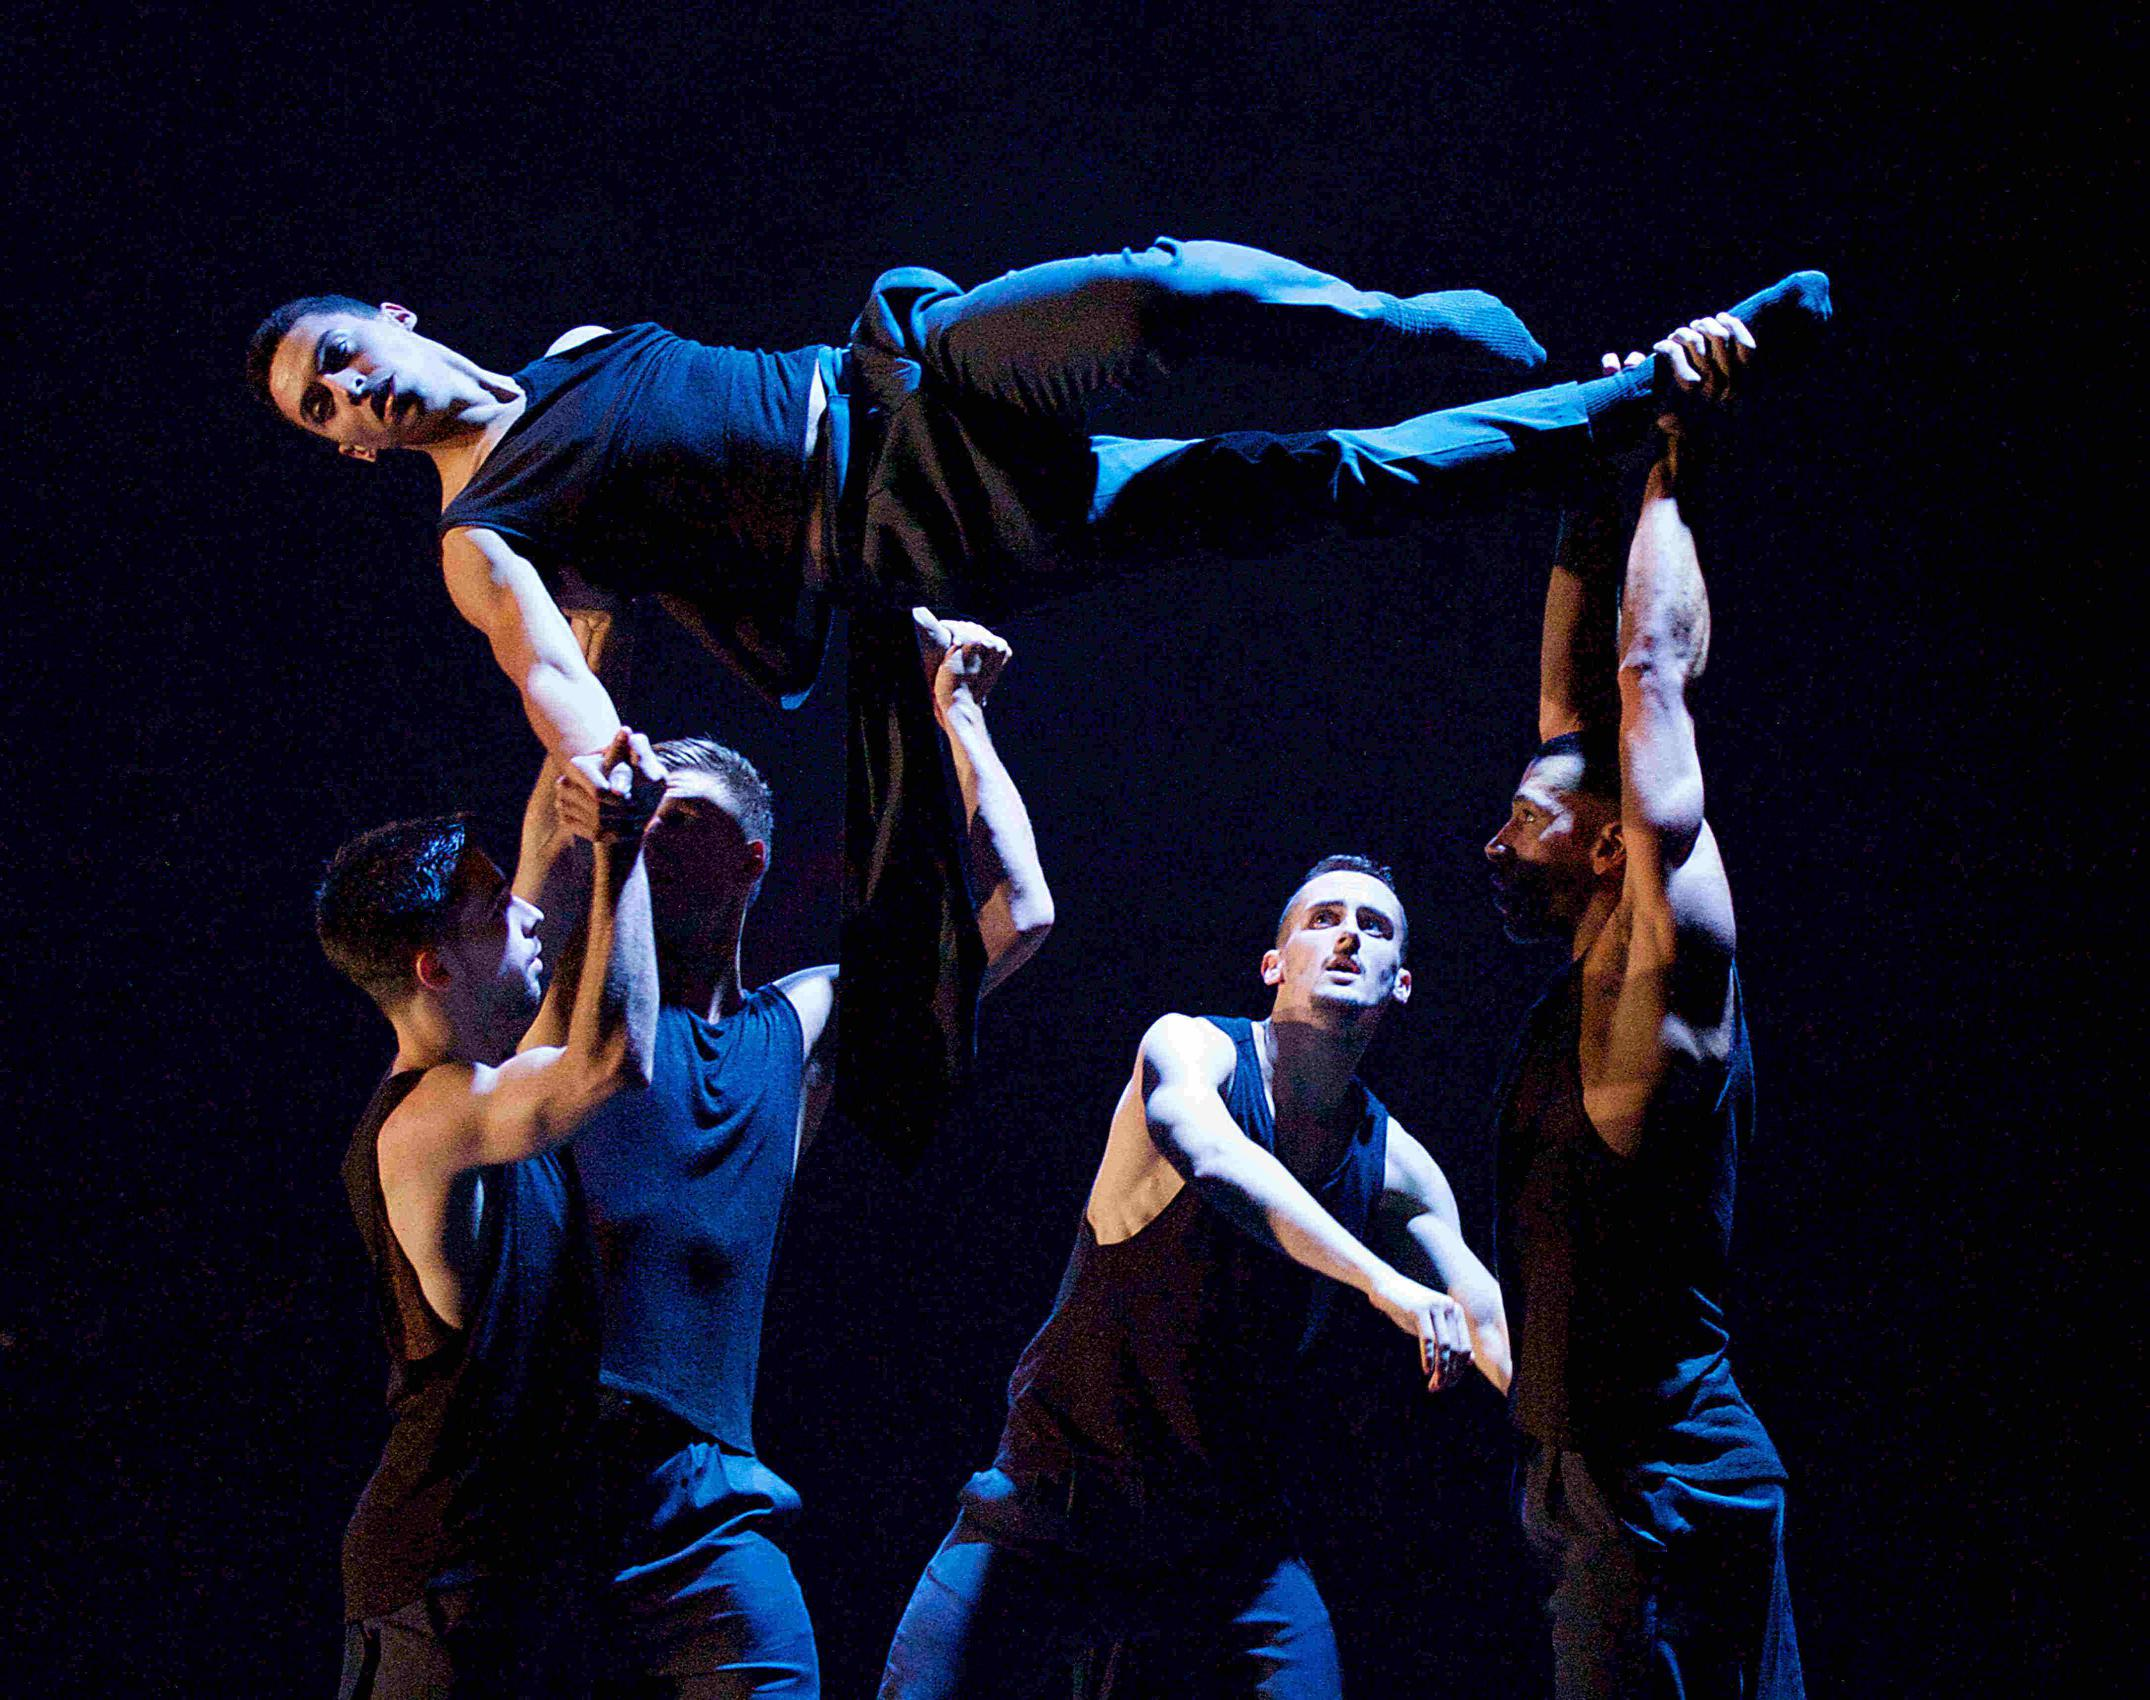 BalletBoys The Talent 2014 in Kristen McNally's MeTheus